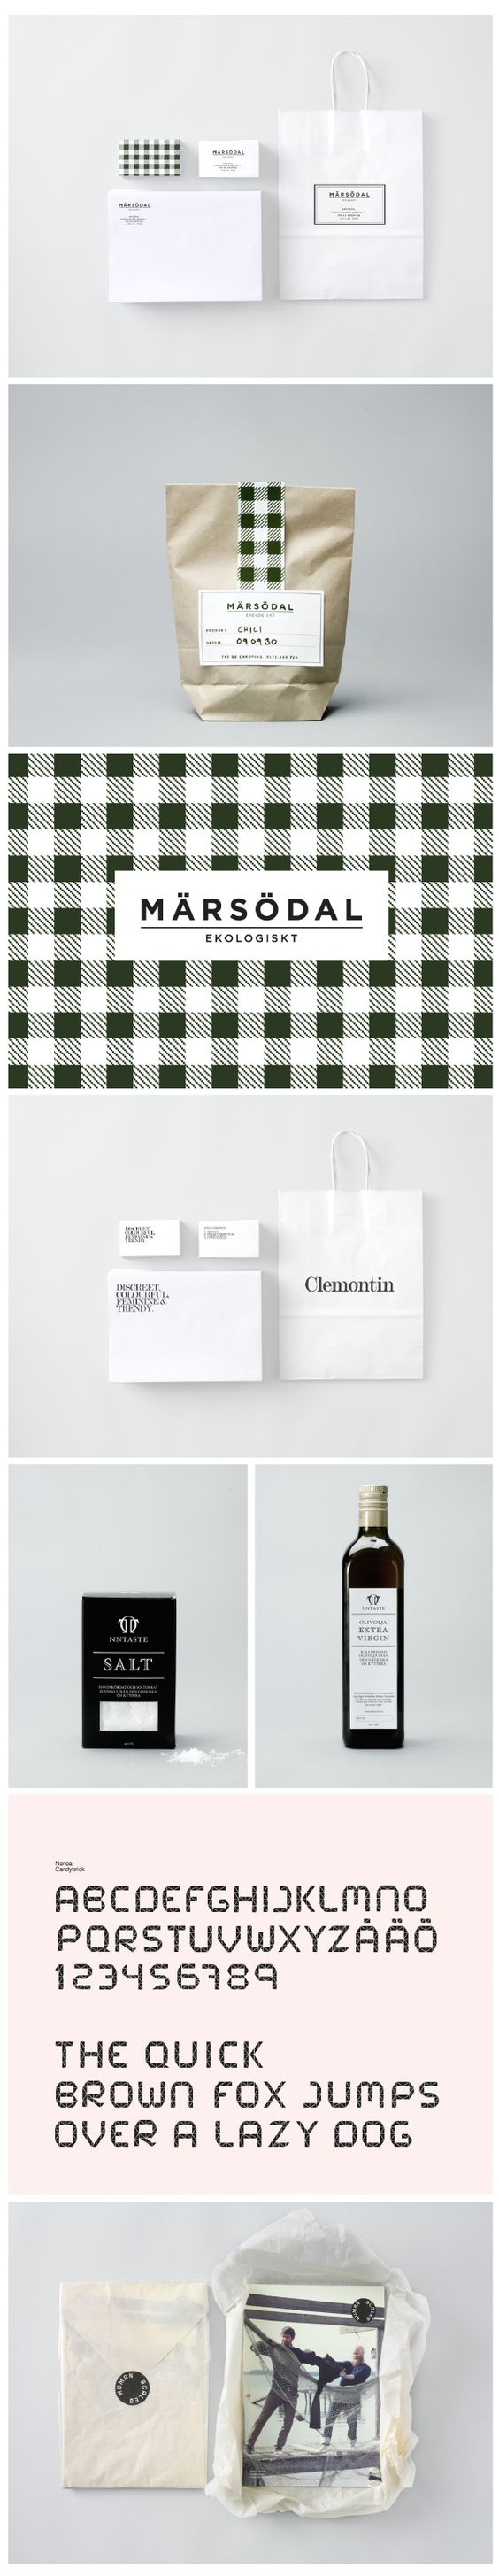 via @zakkanouveau #packaging #branding #marketing